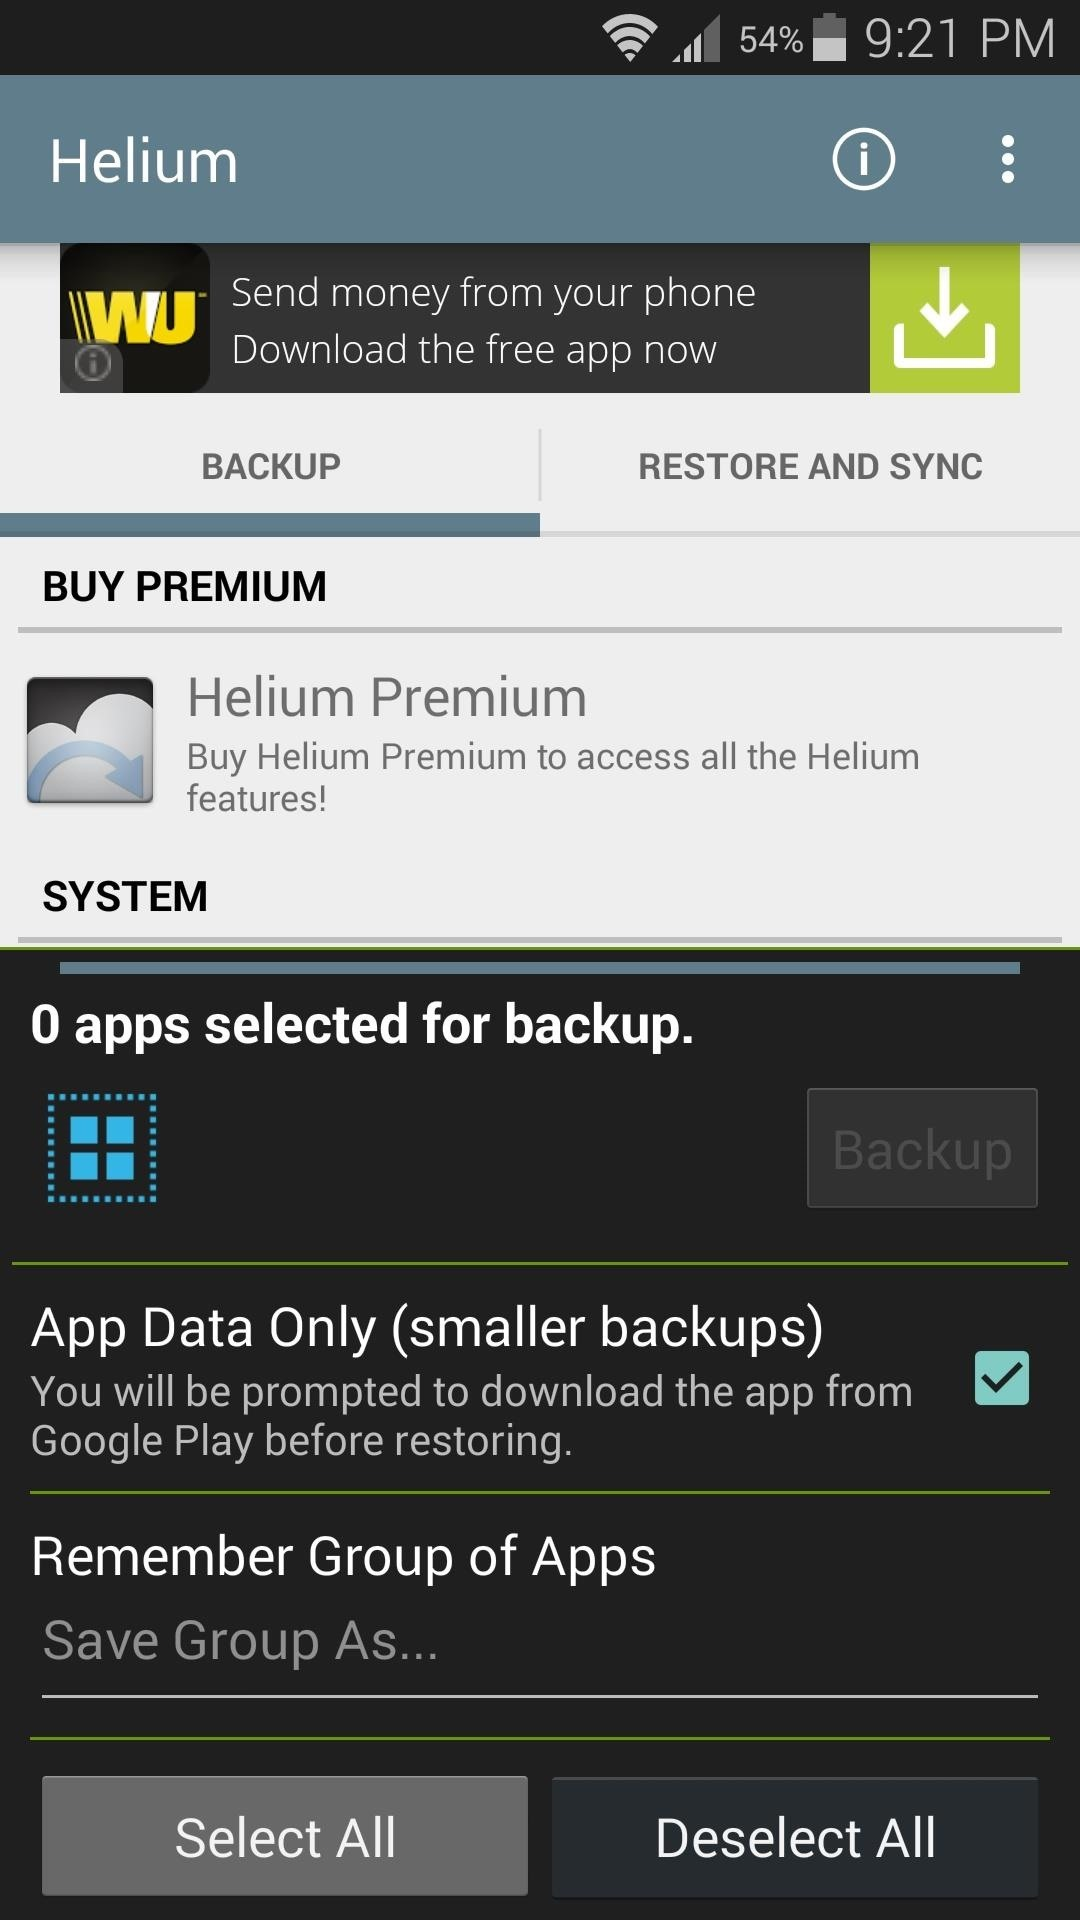 helium app sync and backup premium